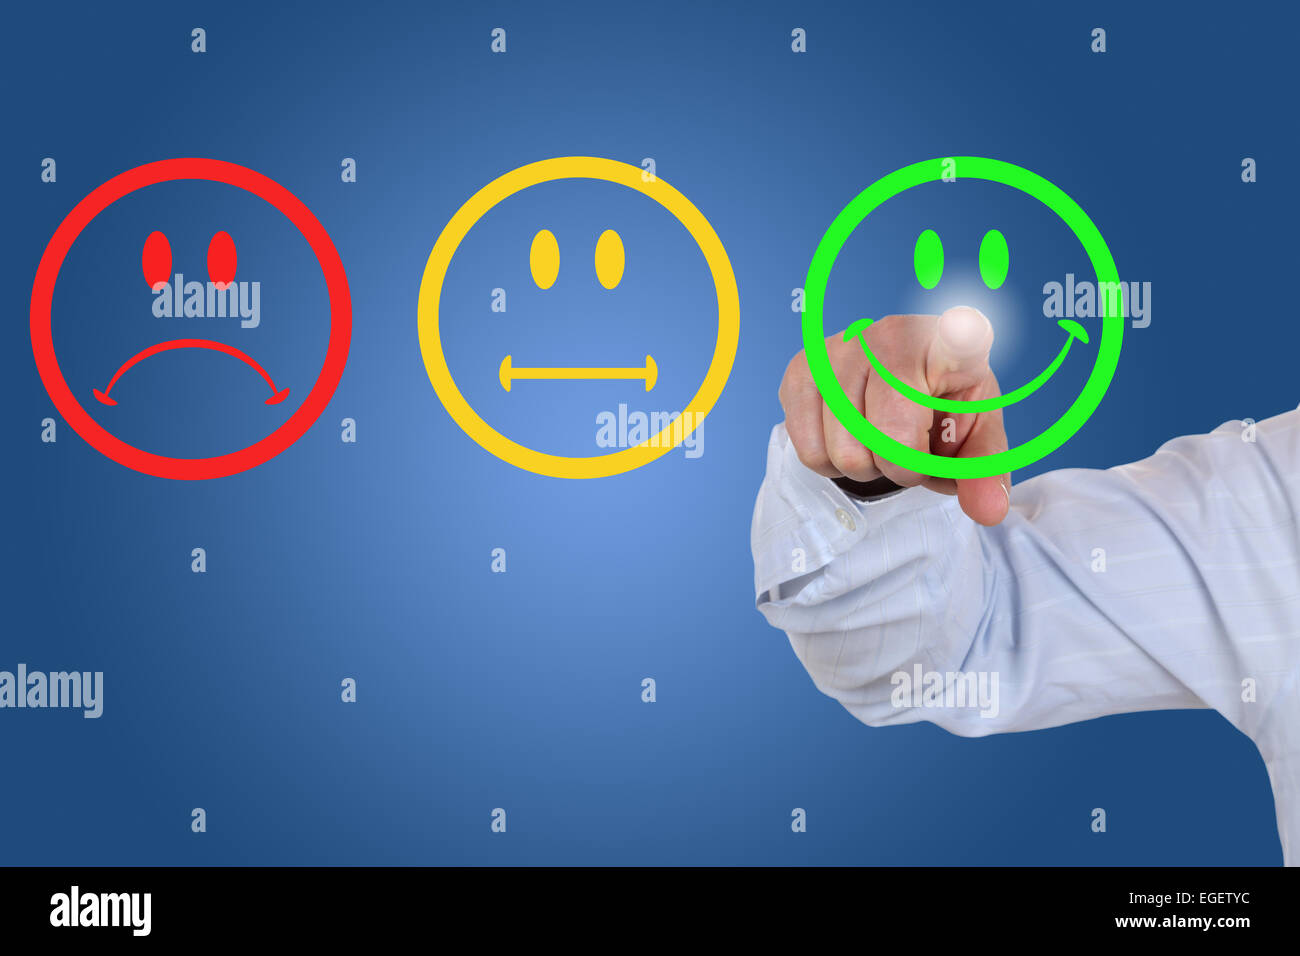 Businessman gives a positive vote for service quality with a green smiley - Stock Image